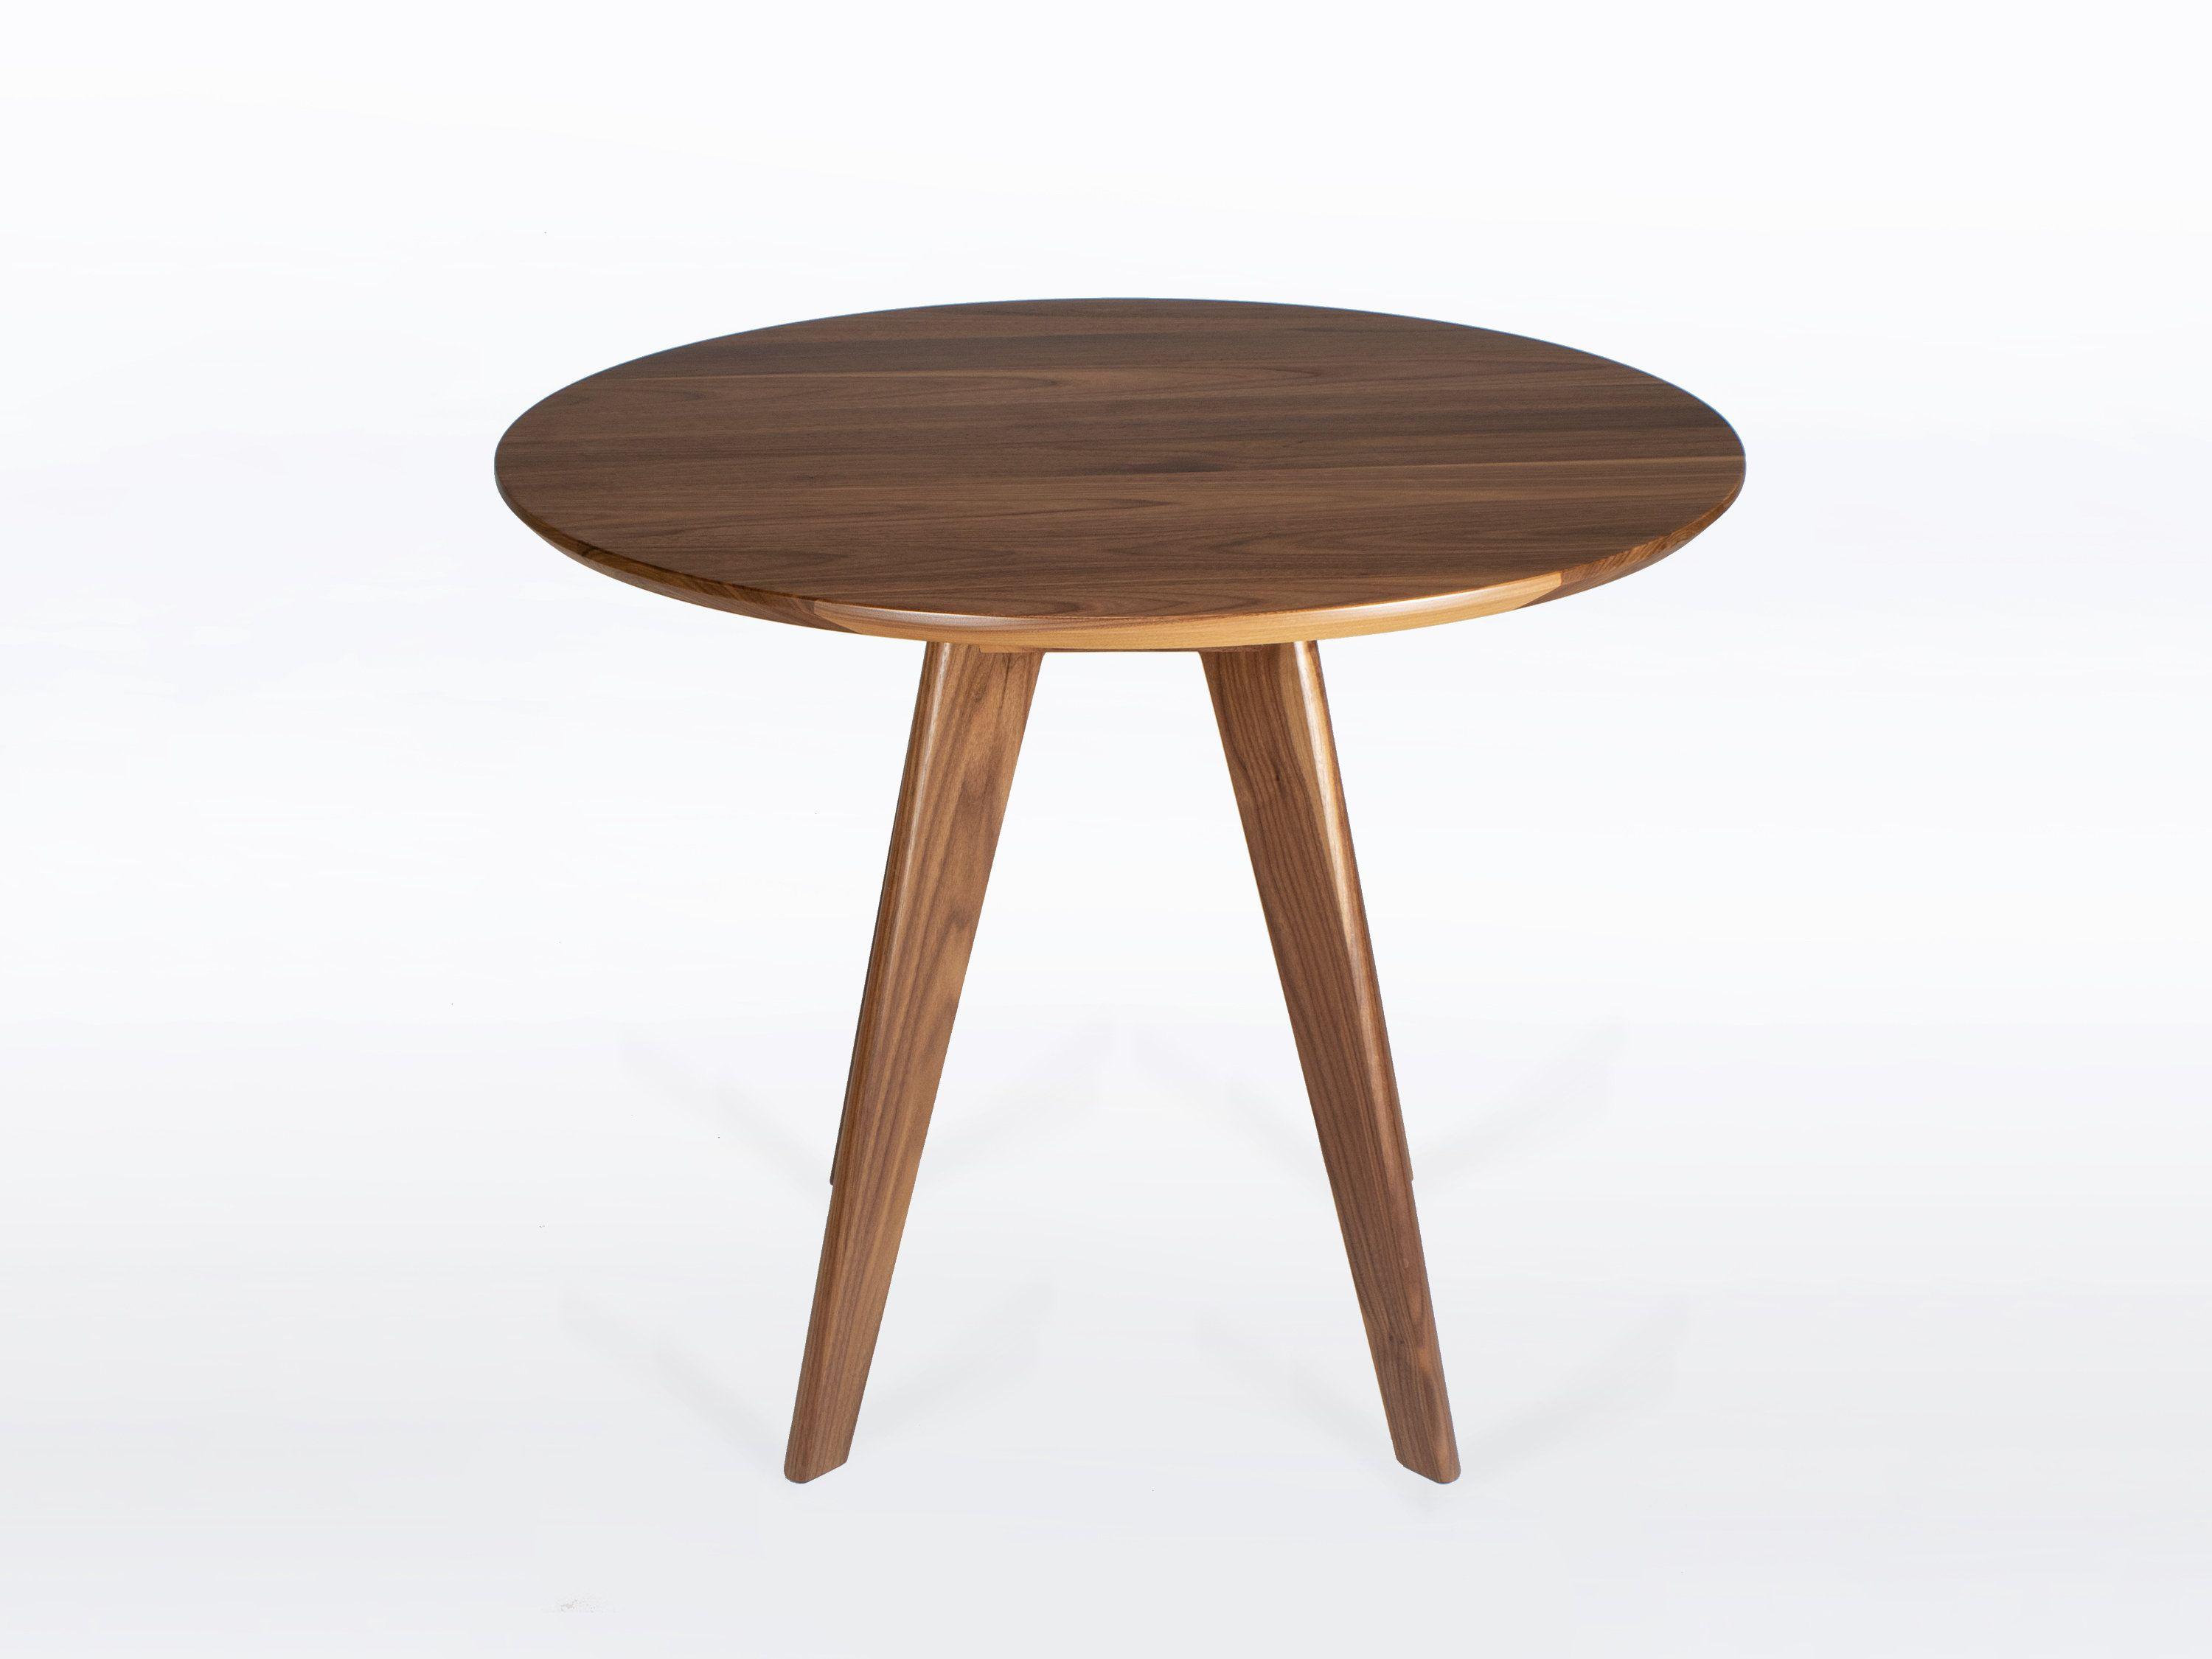 36 Inch Round Dining Table In Solid Natural Walnut Wood Seats 4 Ships Free By Nathanhunterdesign On Round Dining Table Round Dining Round Dining Room Table